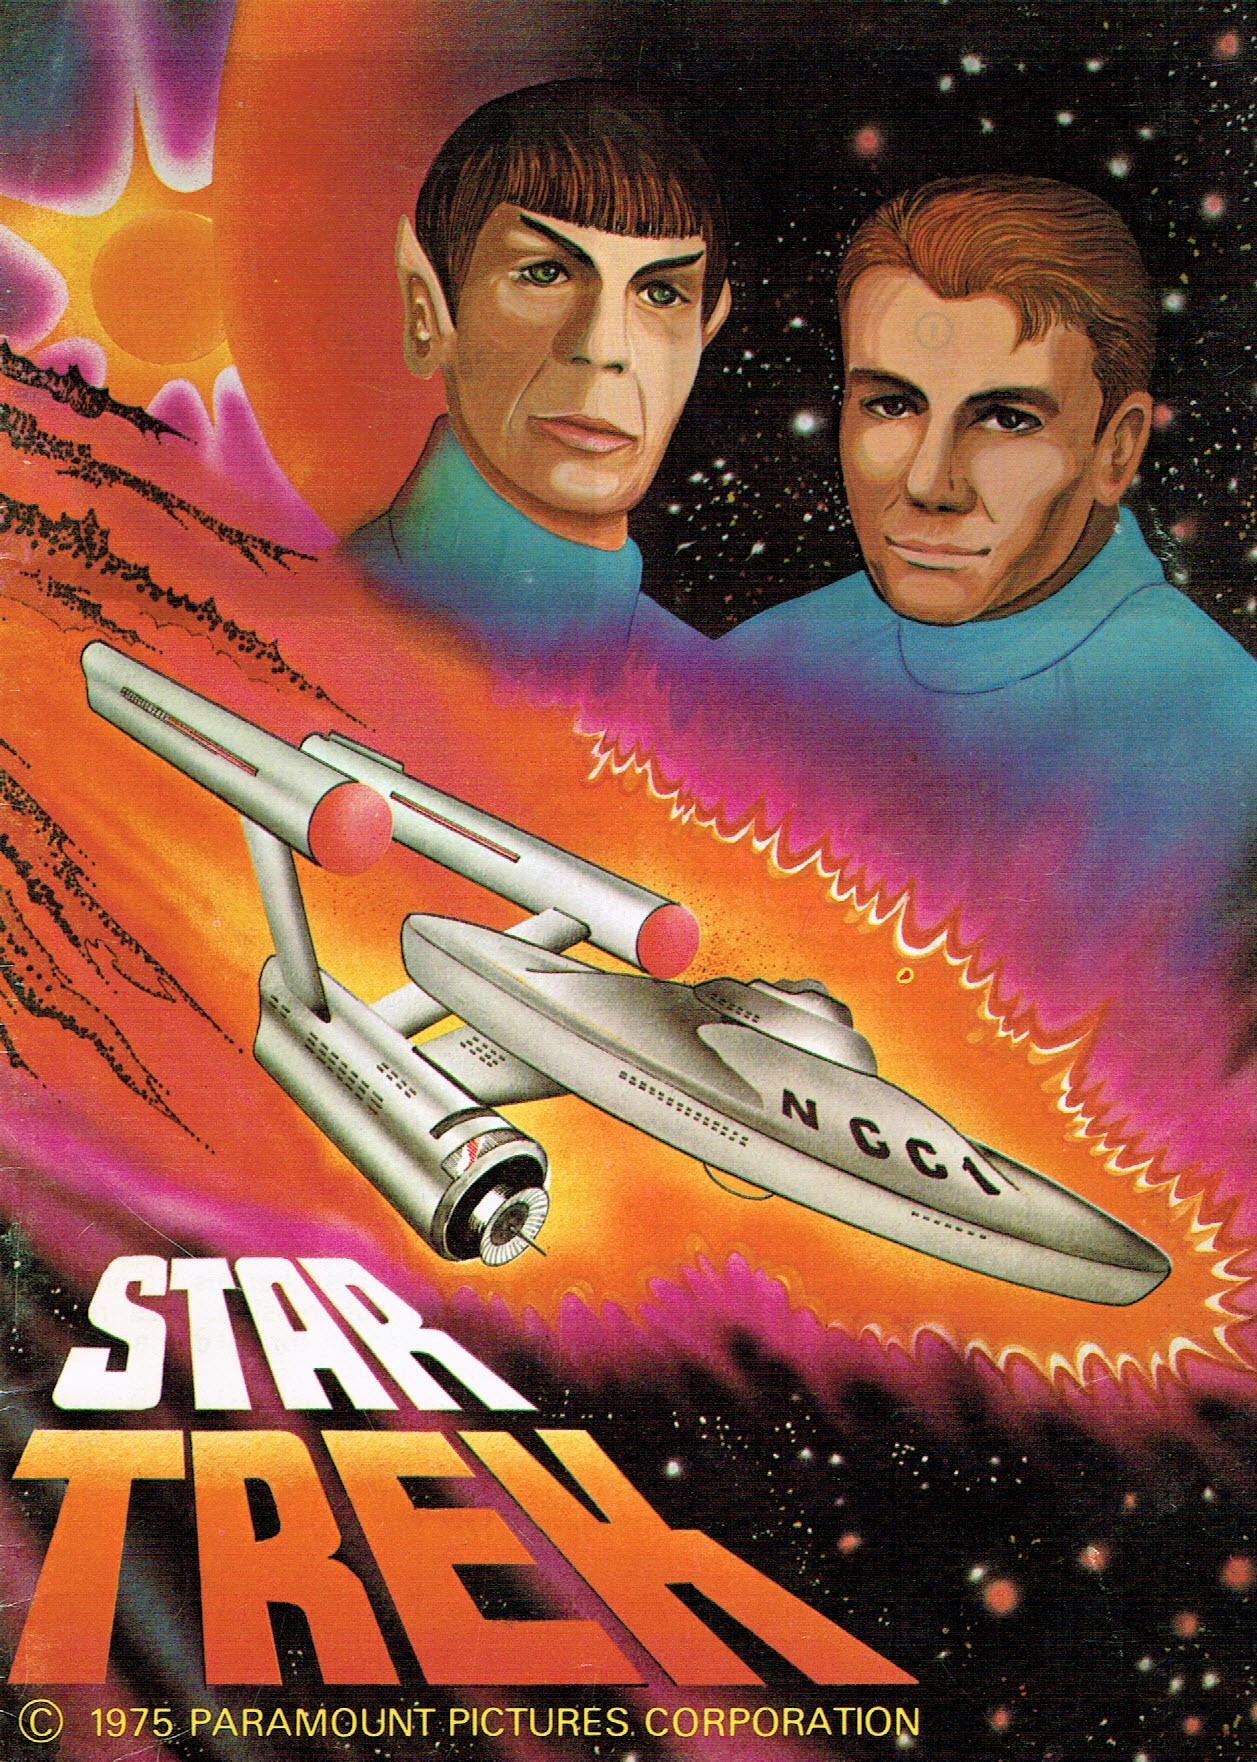 The cover of the Star Trek sticker book, depicting the Enterprise and Kirk and Spock.